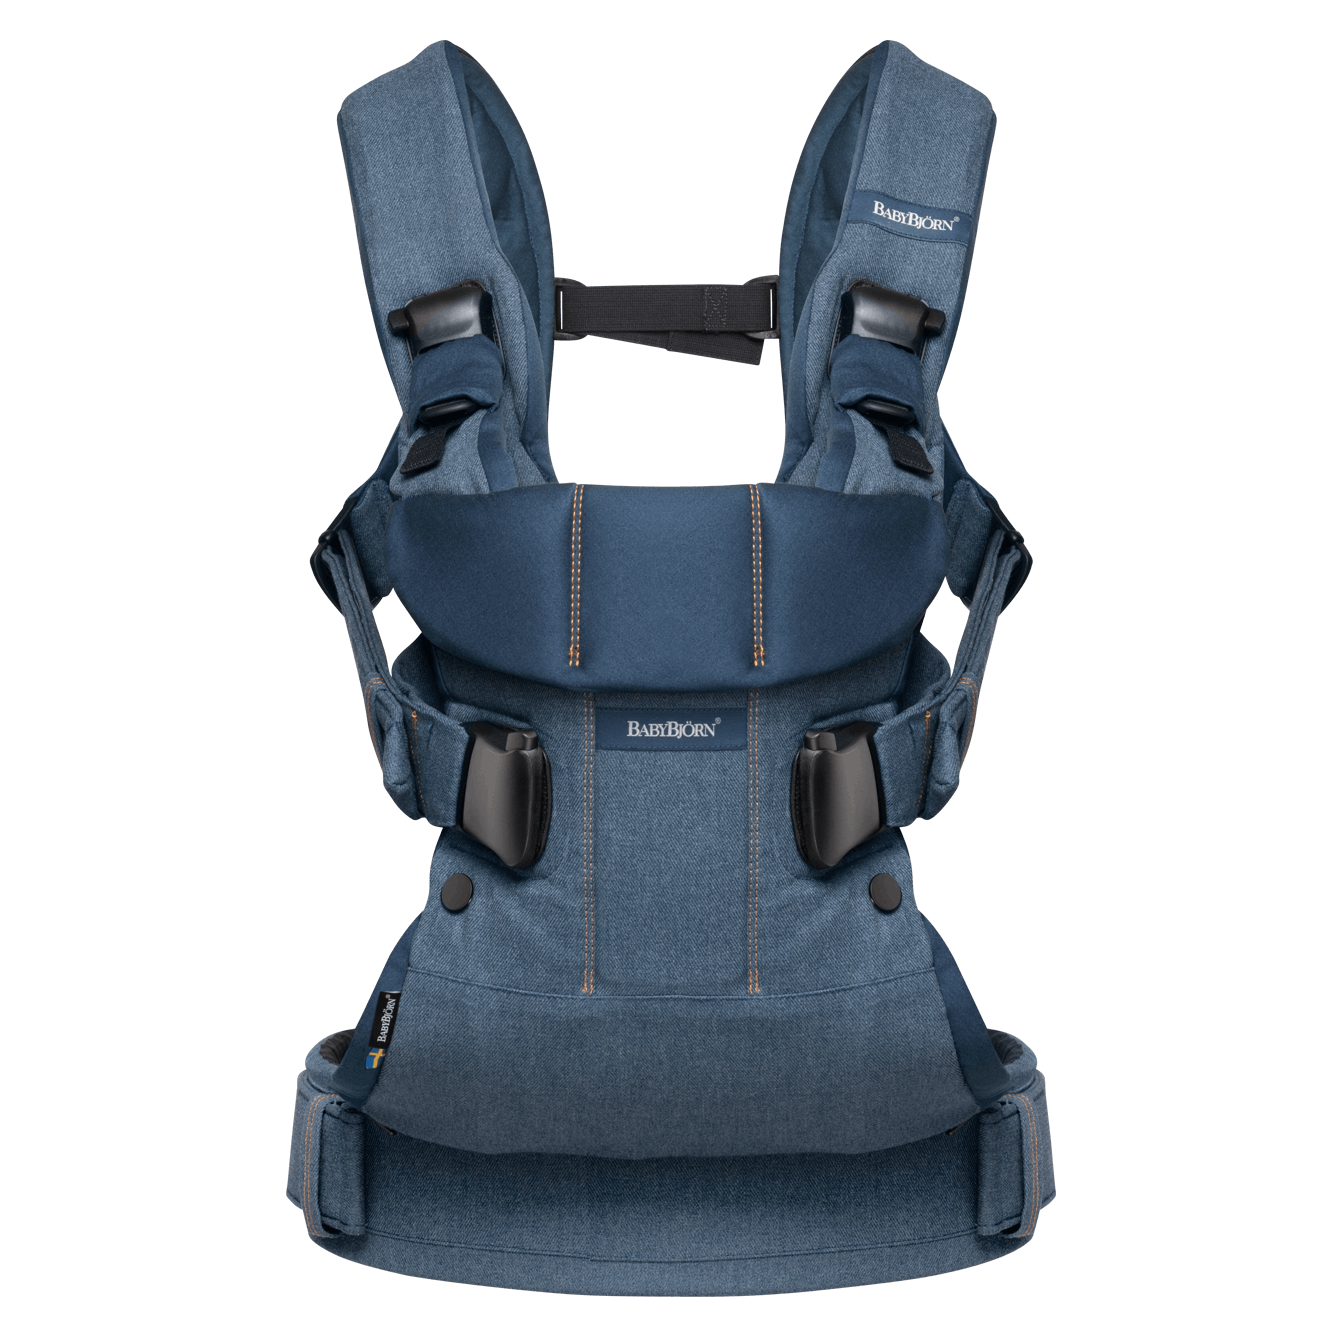 Baby Carrier One, an ergonomic baby carrier with multiple carrying options - BABYBJÖRN